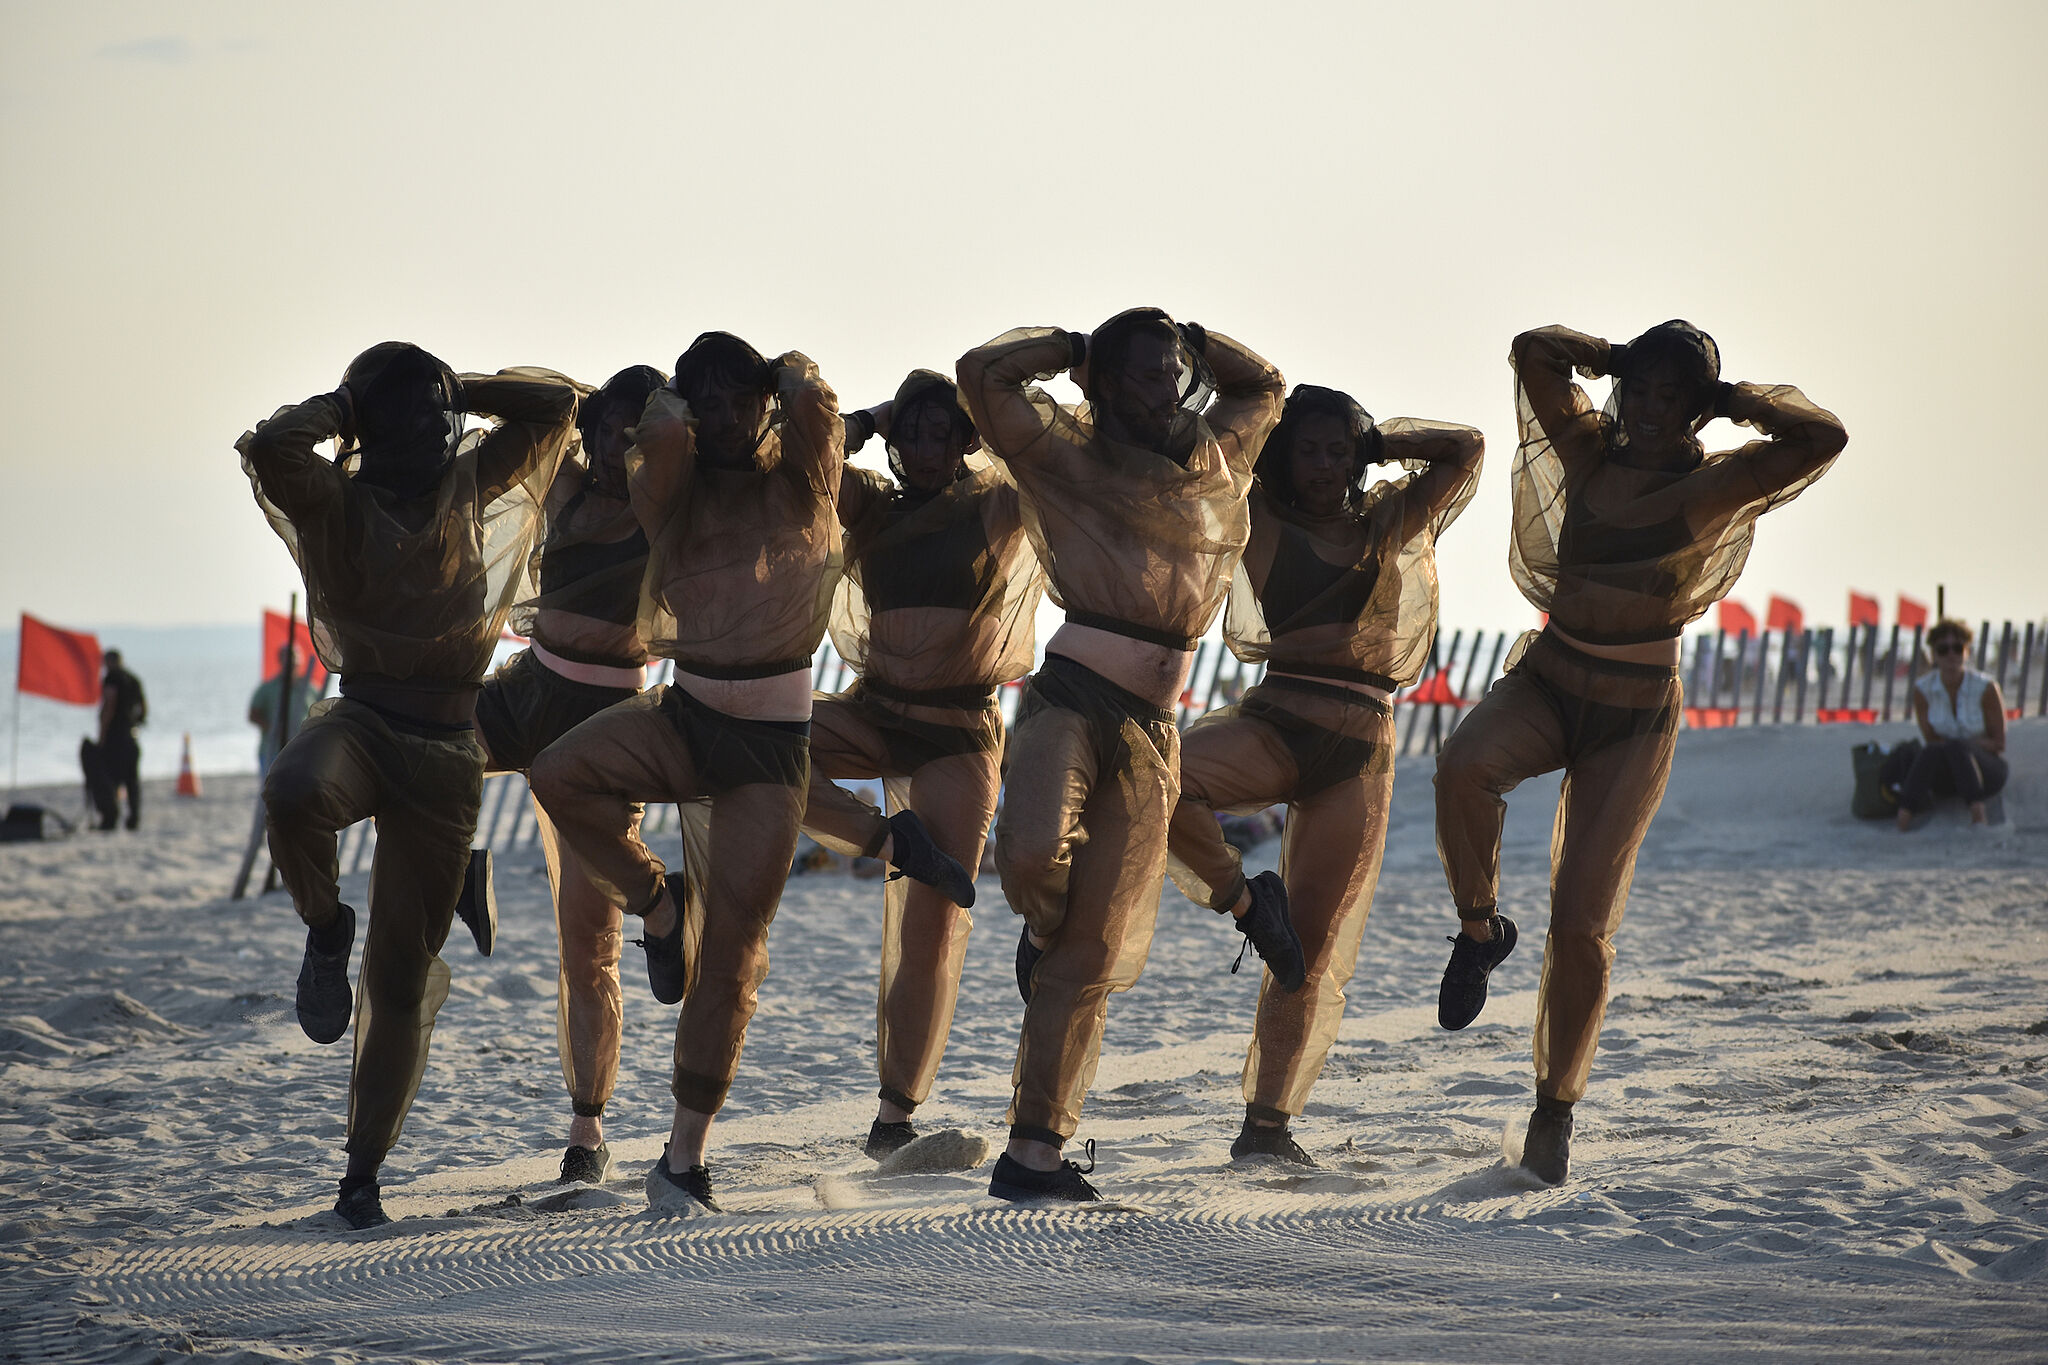 A photo of seven people posed in performance on a beach.